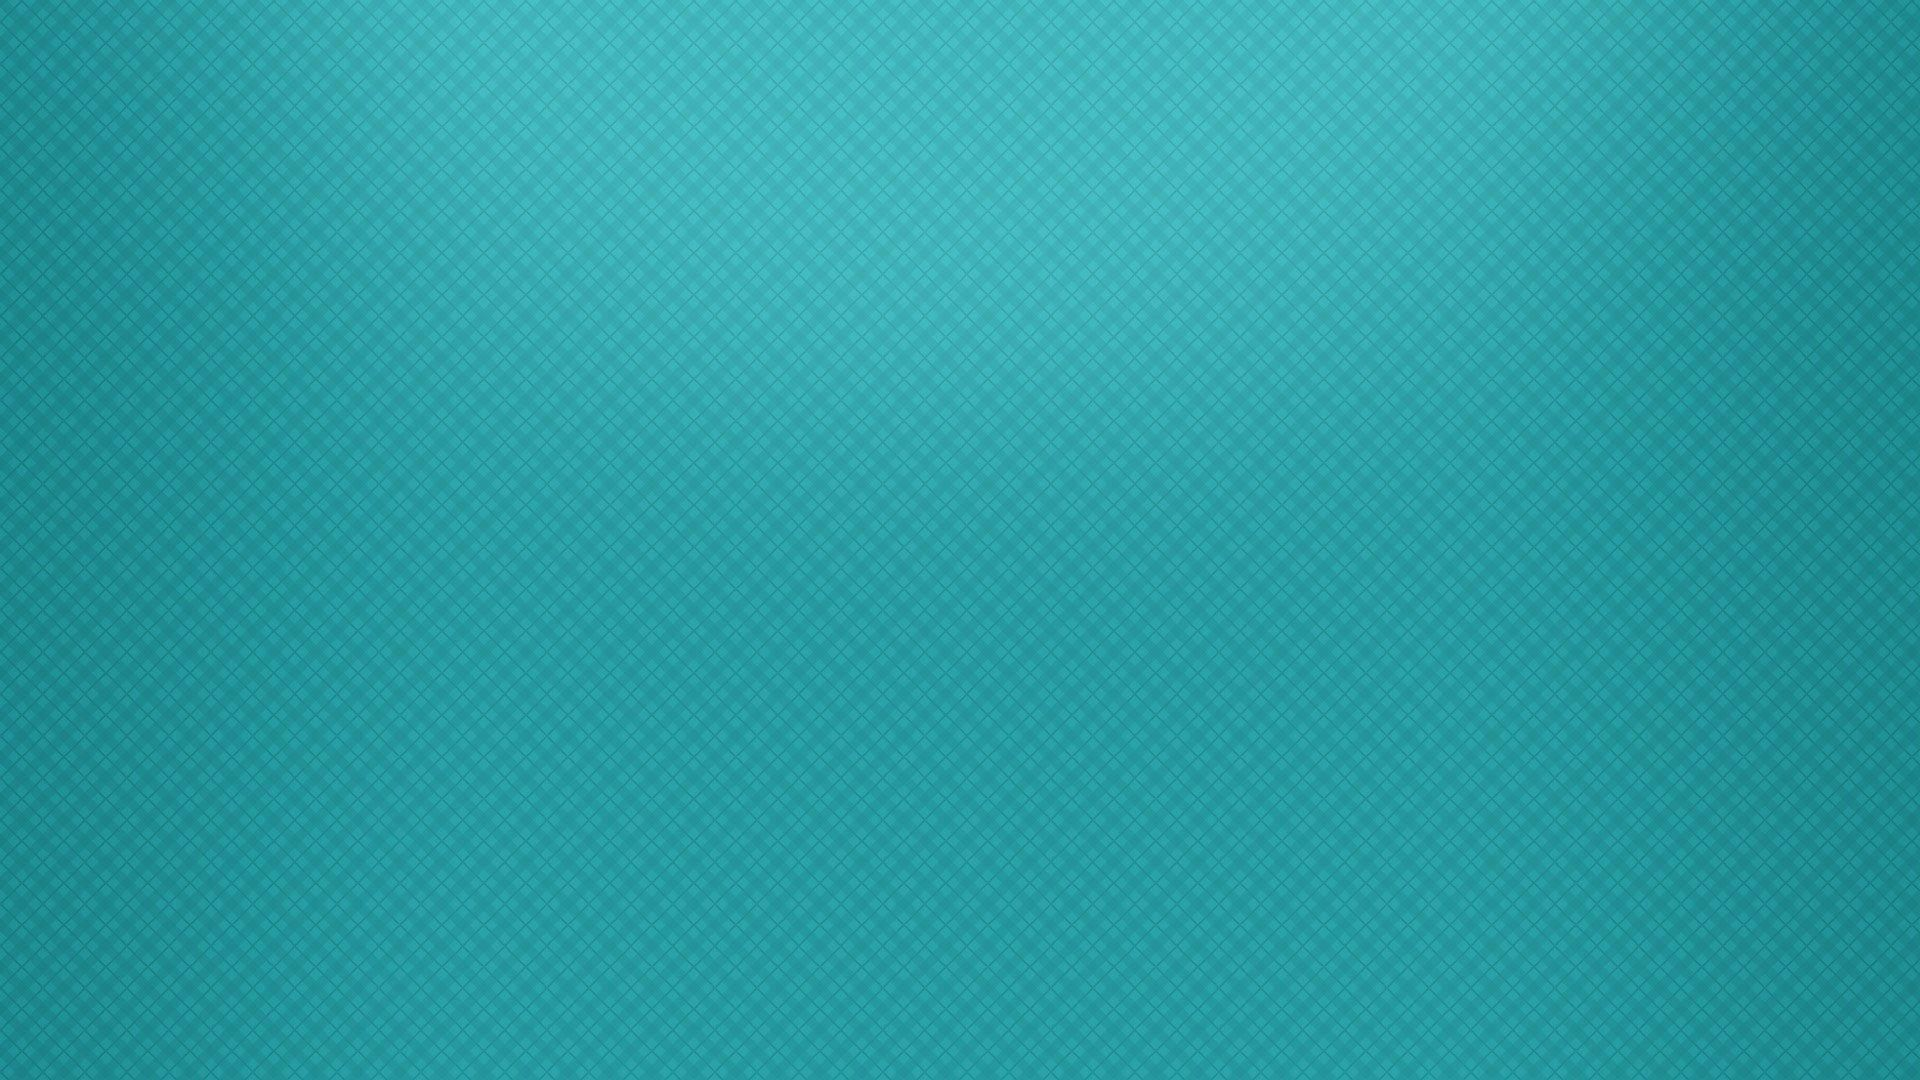 Mint Green Free Wallpaper and Background